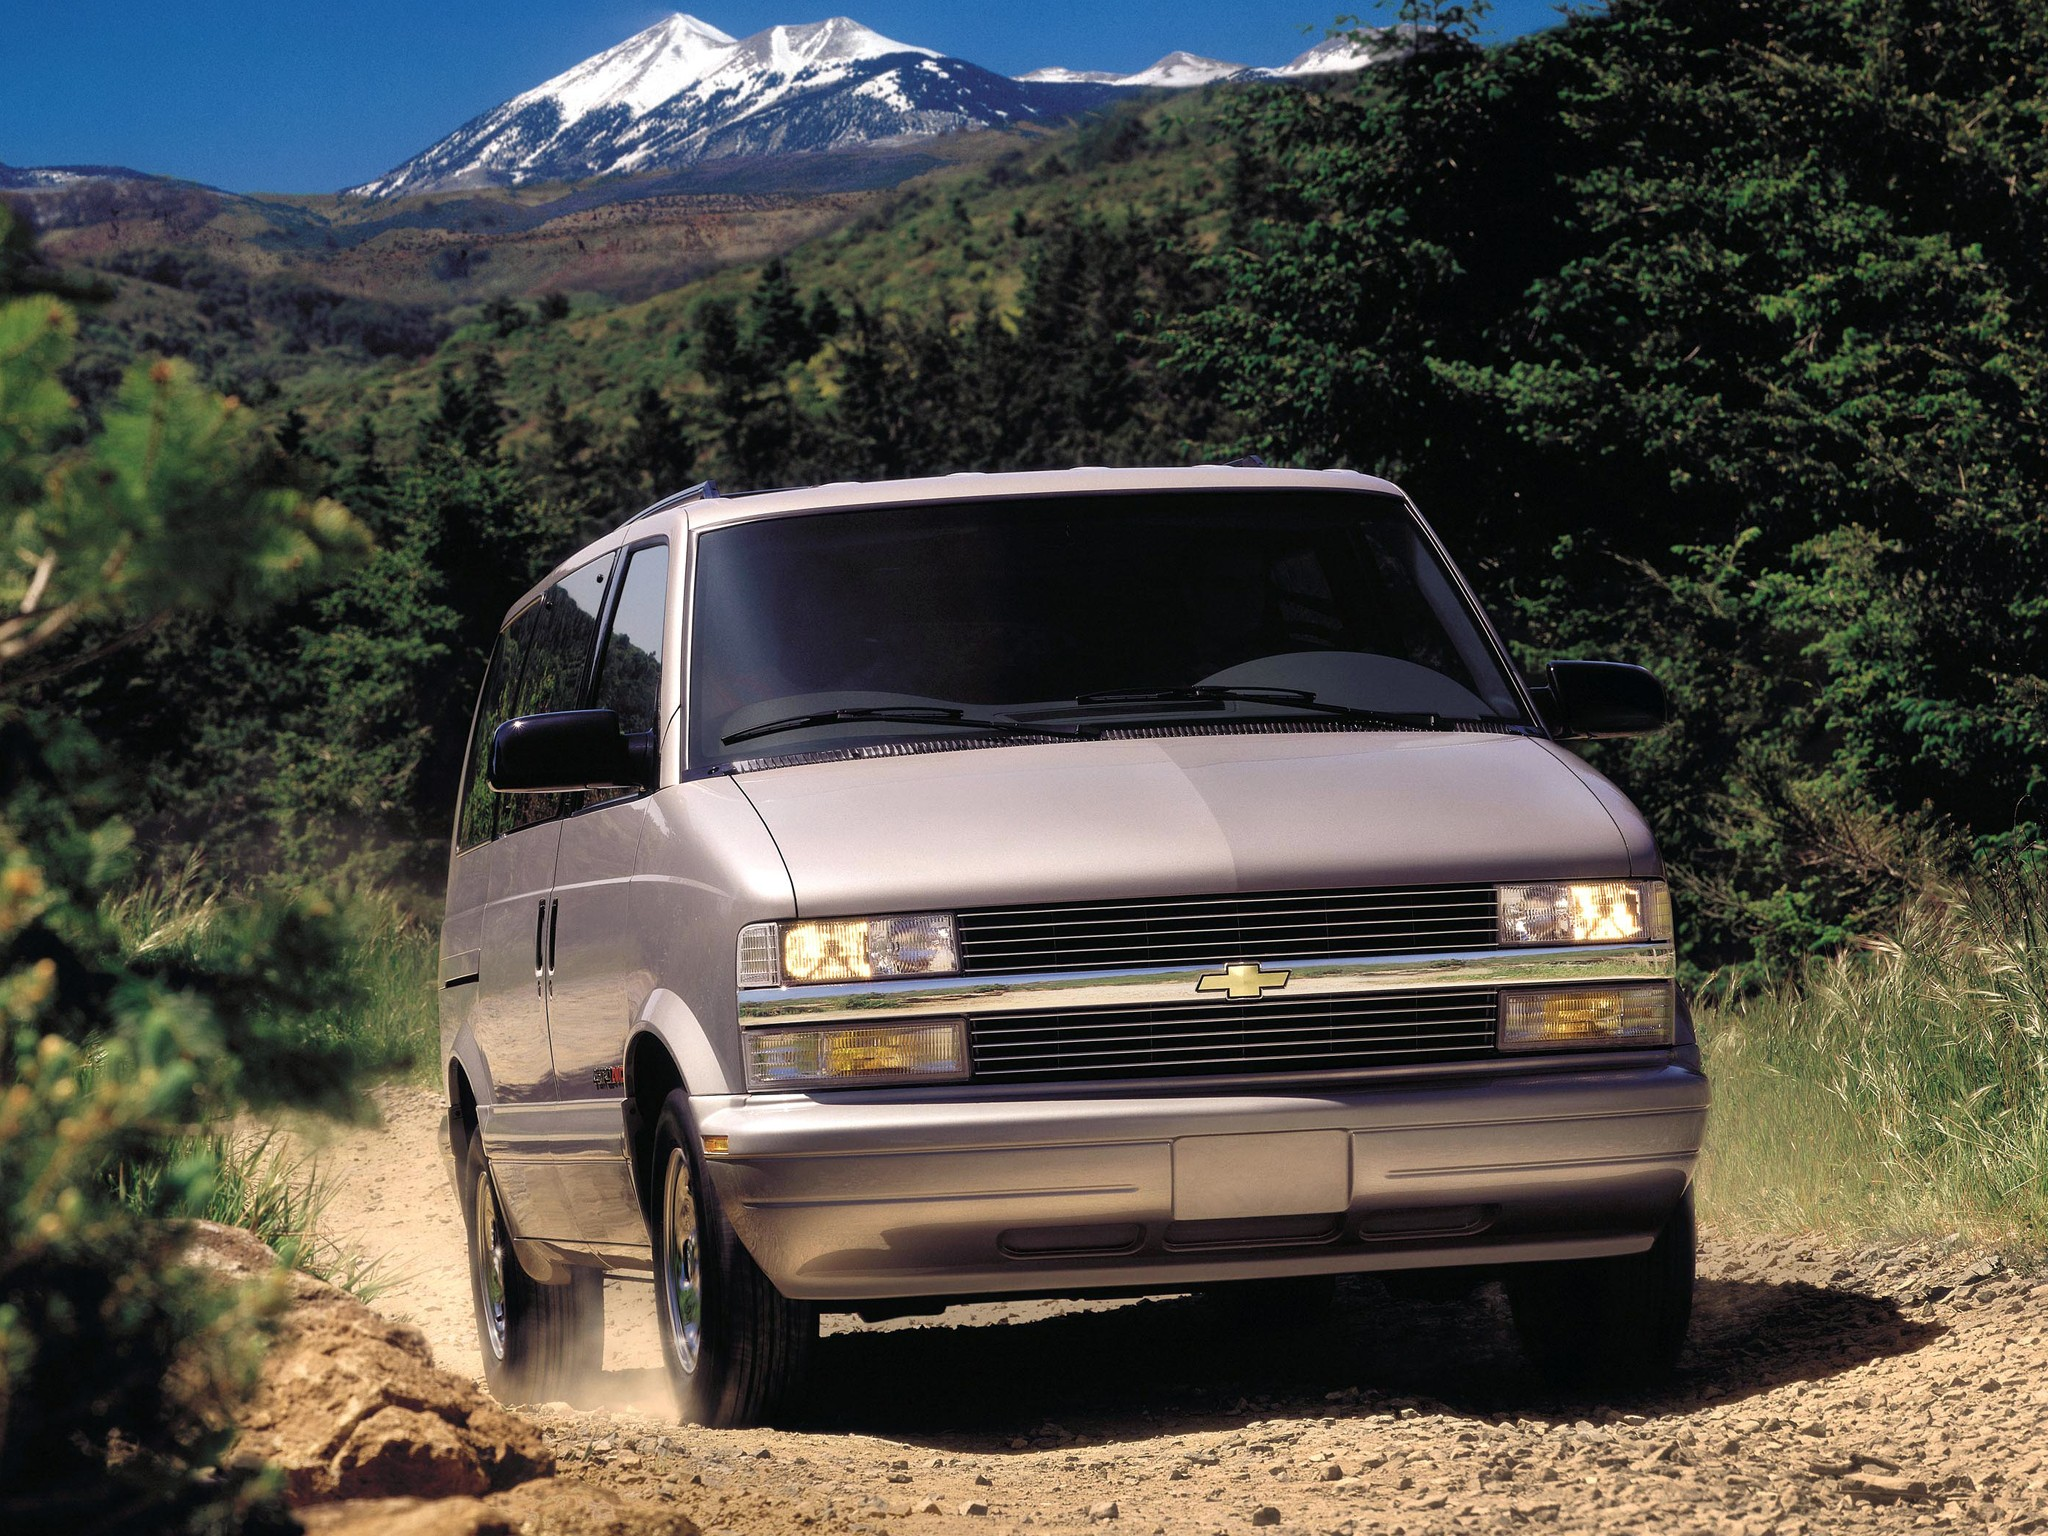 Chevrolet Astro besides Image in addition Corvette Zr likewise Left Side Engine together with Chevrolet Blazer Offroad Interior Red X. on 1994 chevy corvette engine